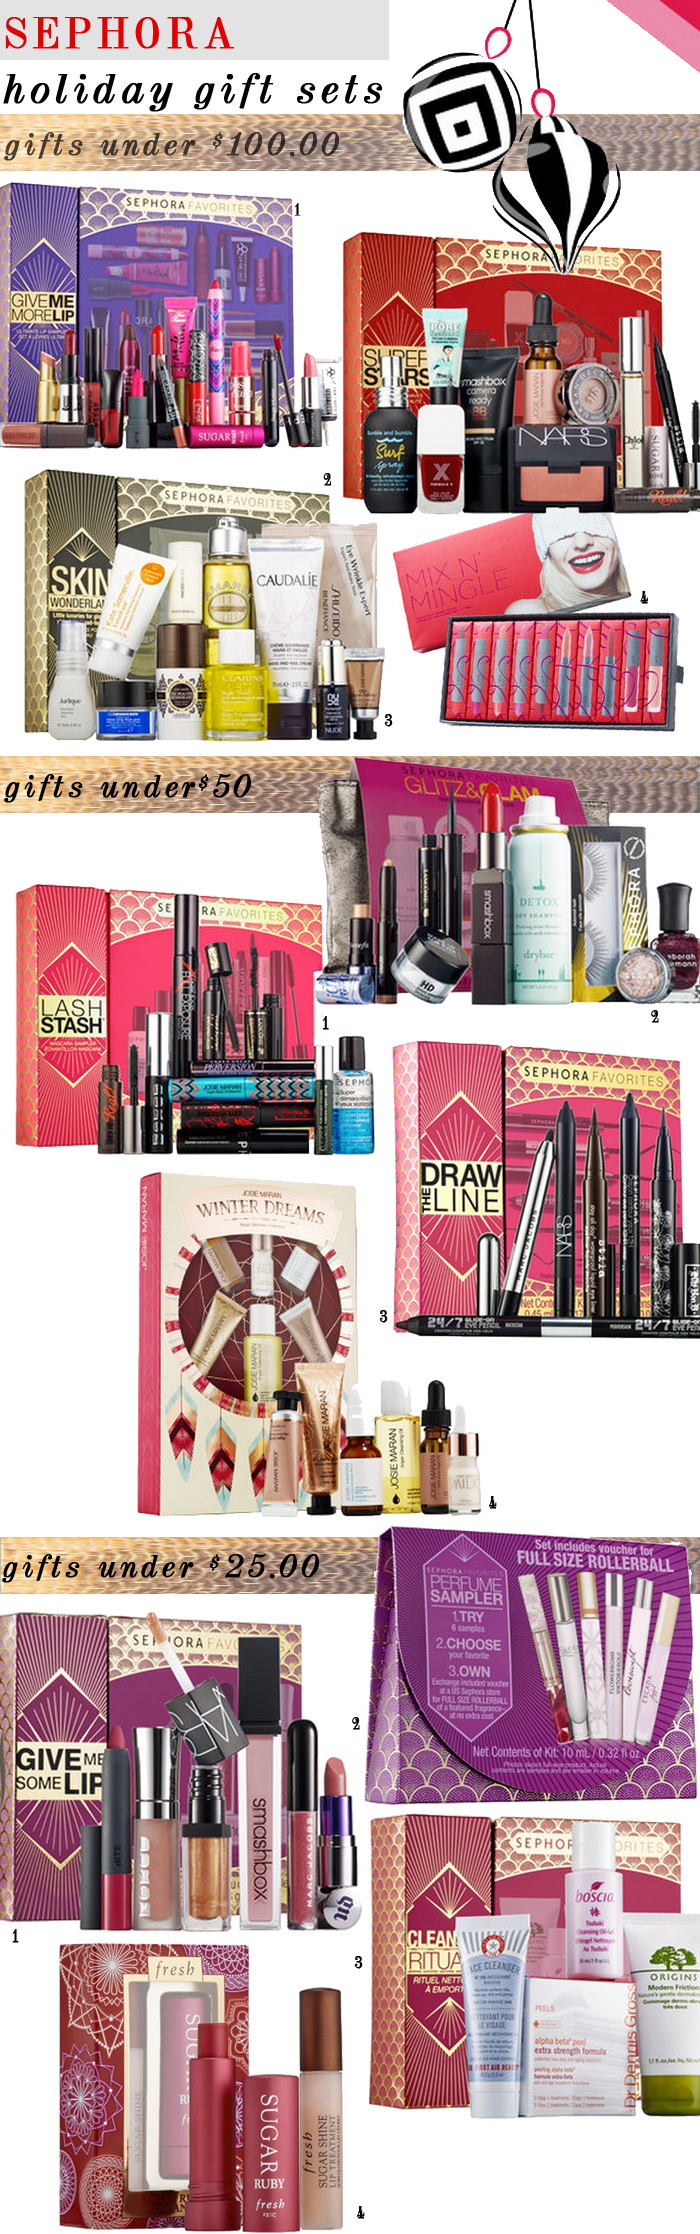 Best sephora holiday gift sets citizens of beauty